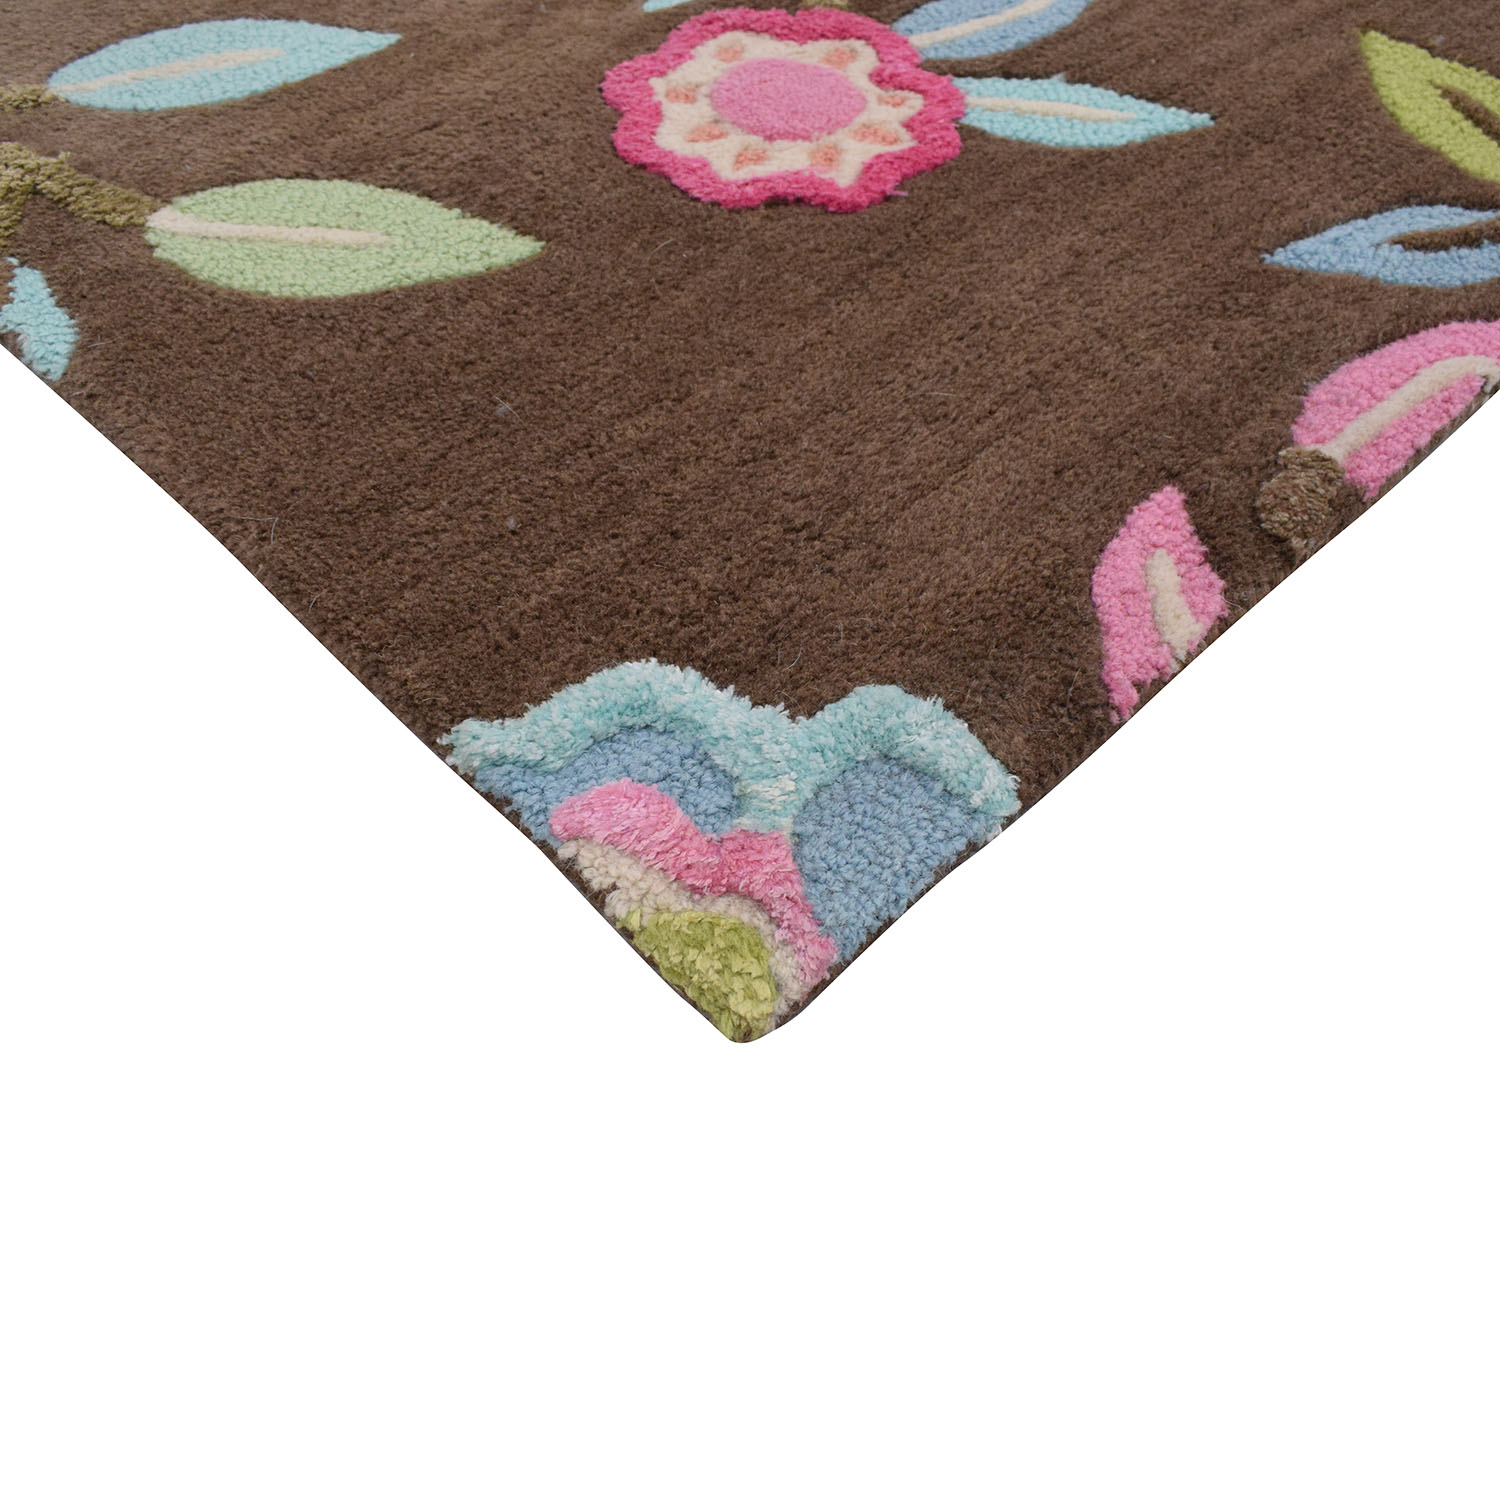 Pottery Barn Teen Floral Area Rug / Rugs